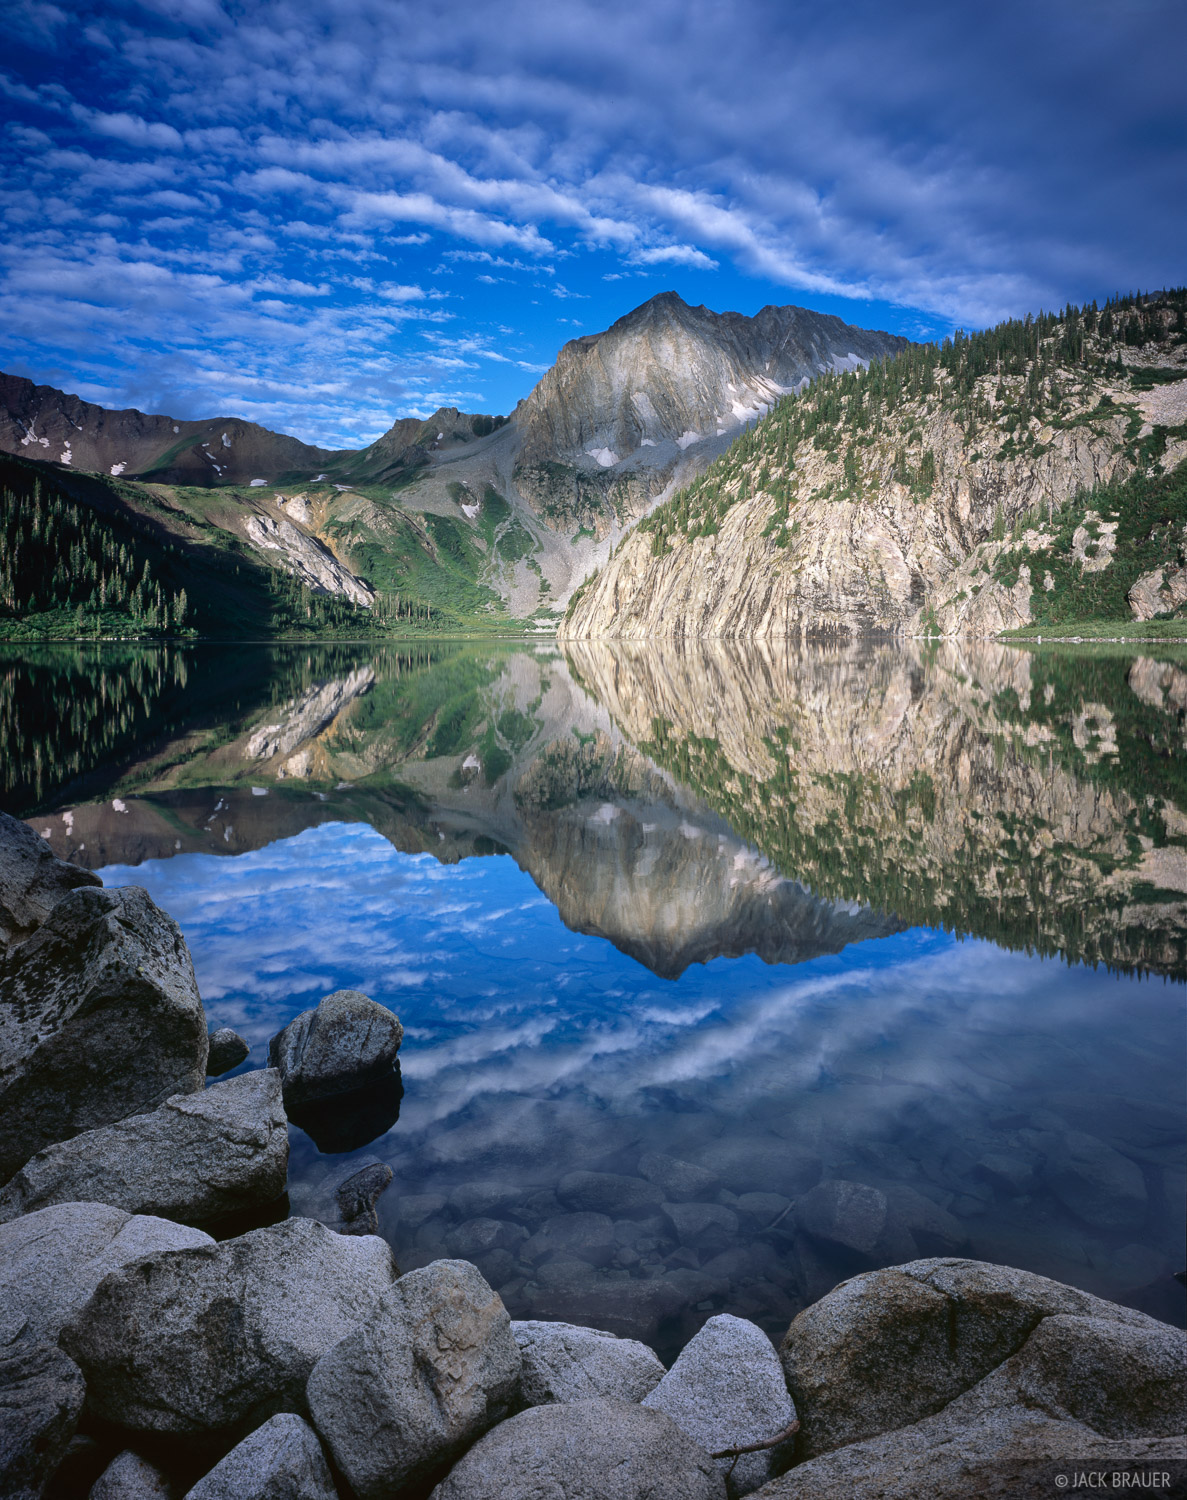 Morning reflection of Snowmass Peak in Snowmass Lake - July